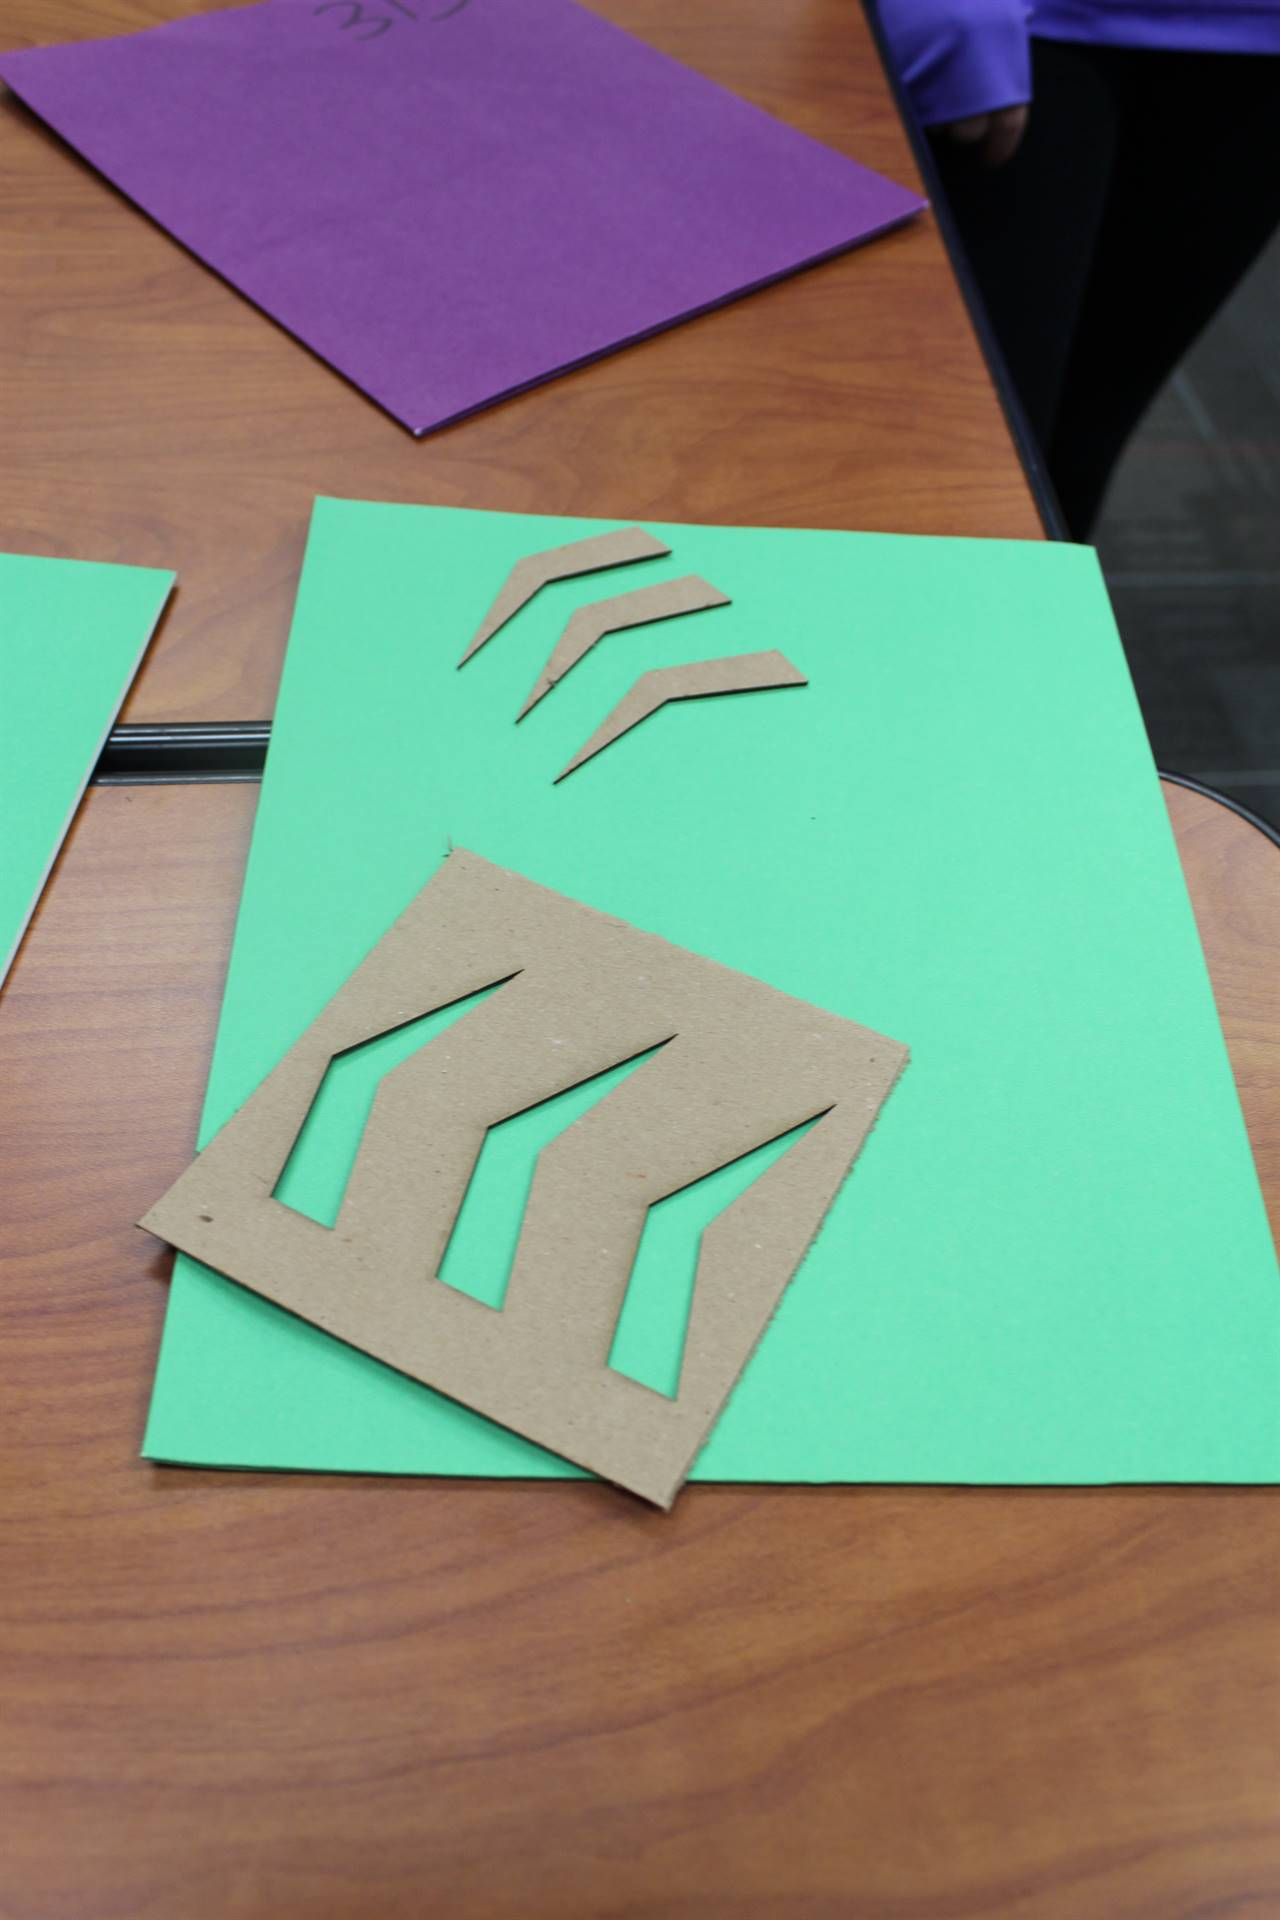 Intro to Sustainable Engineering Photo - New Blade Design for Turbine